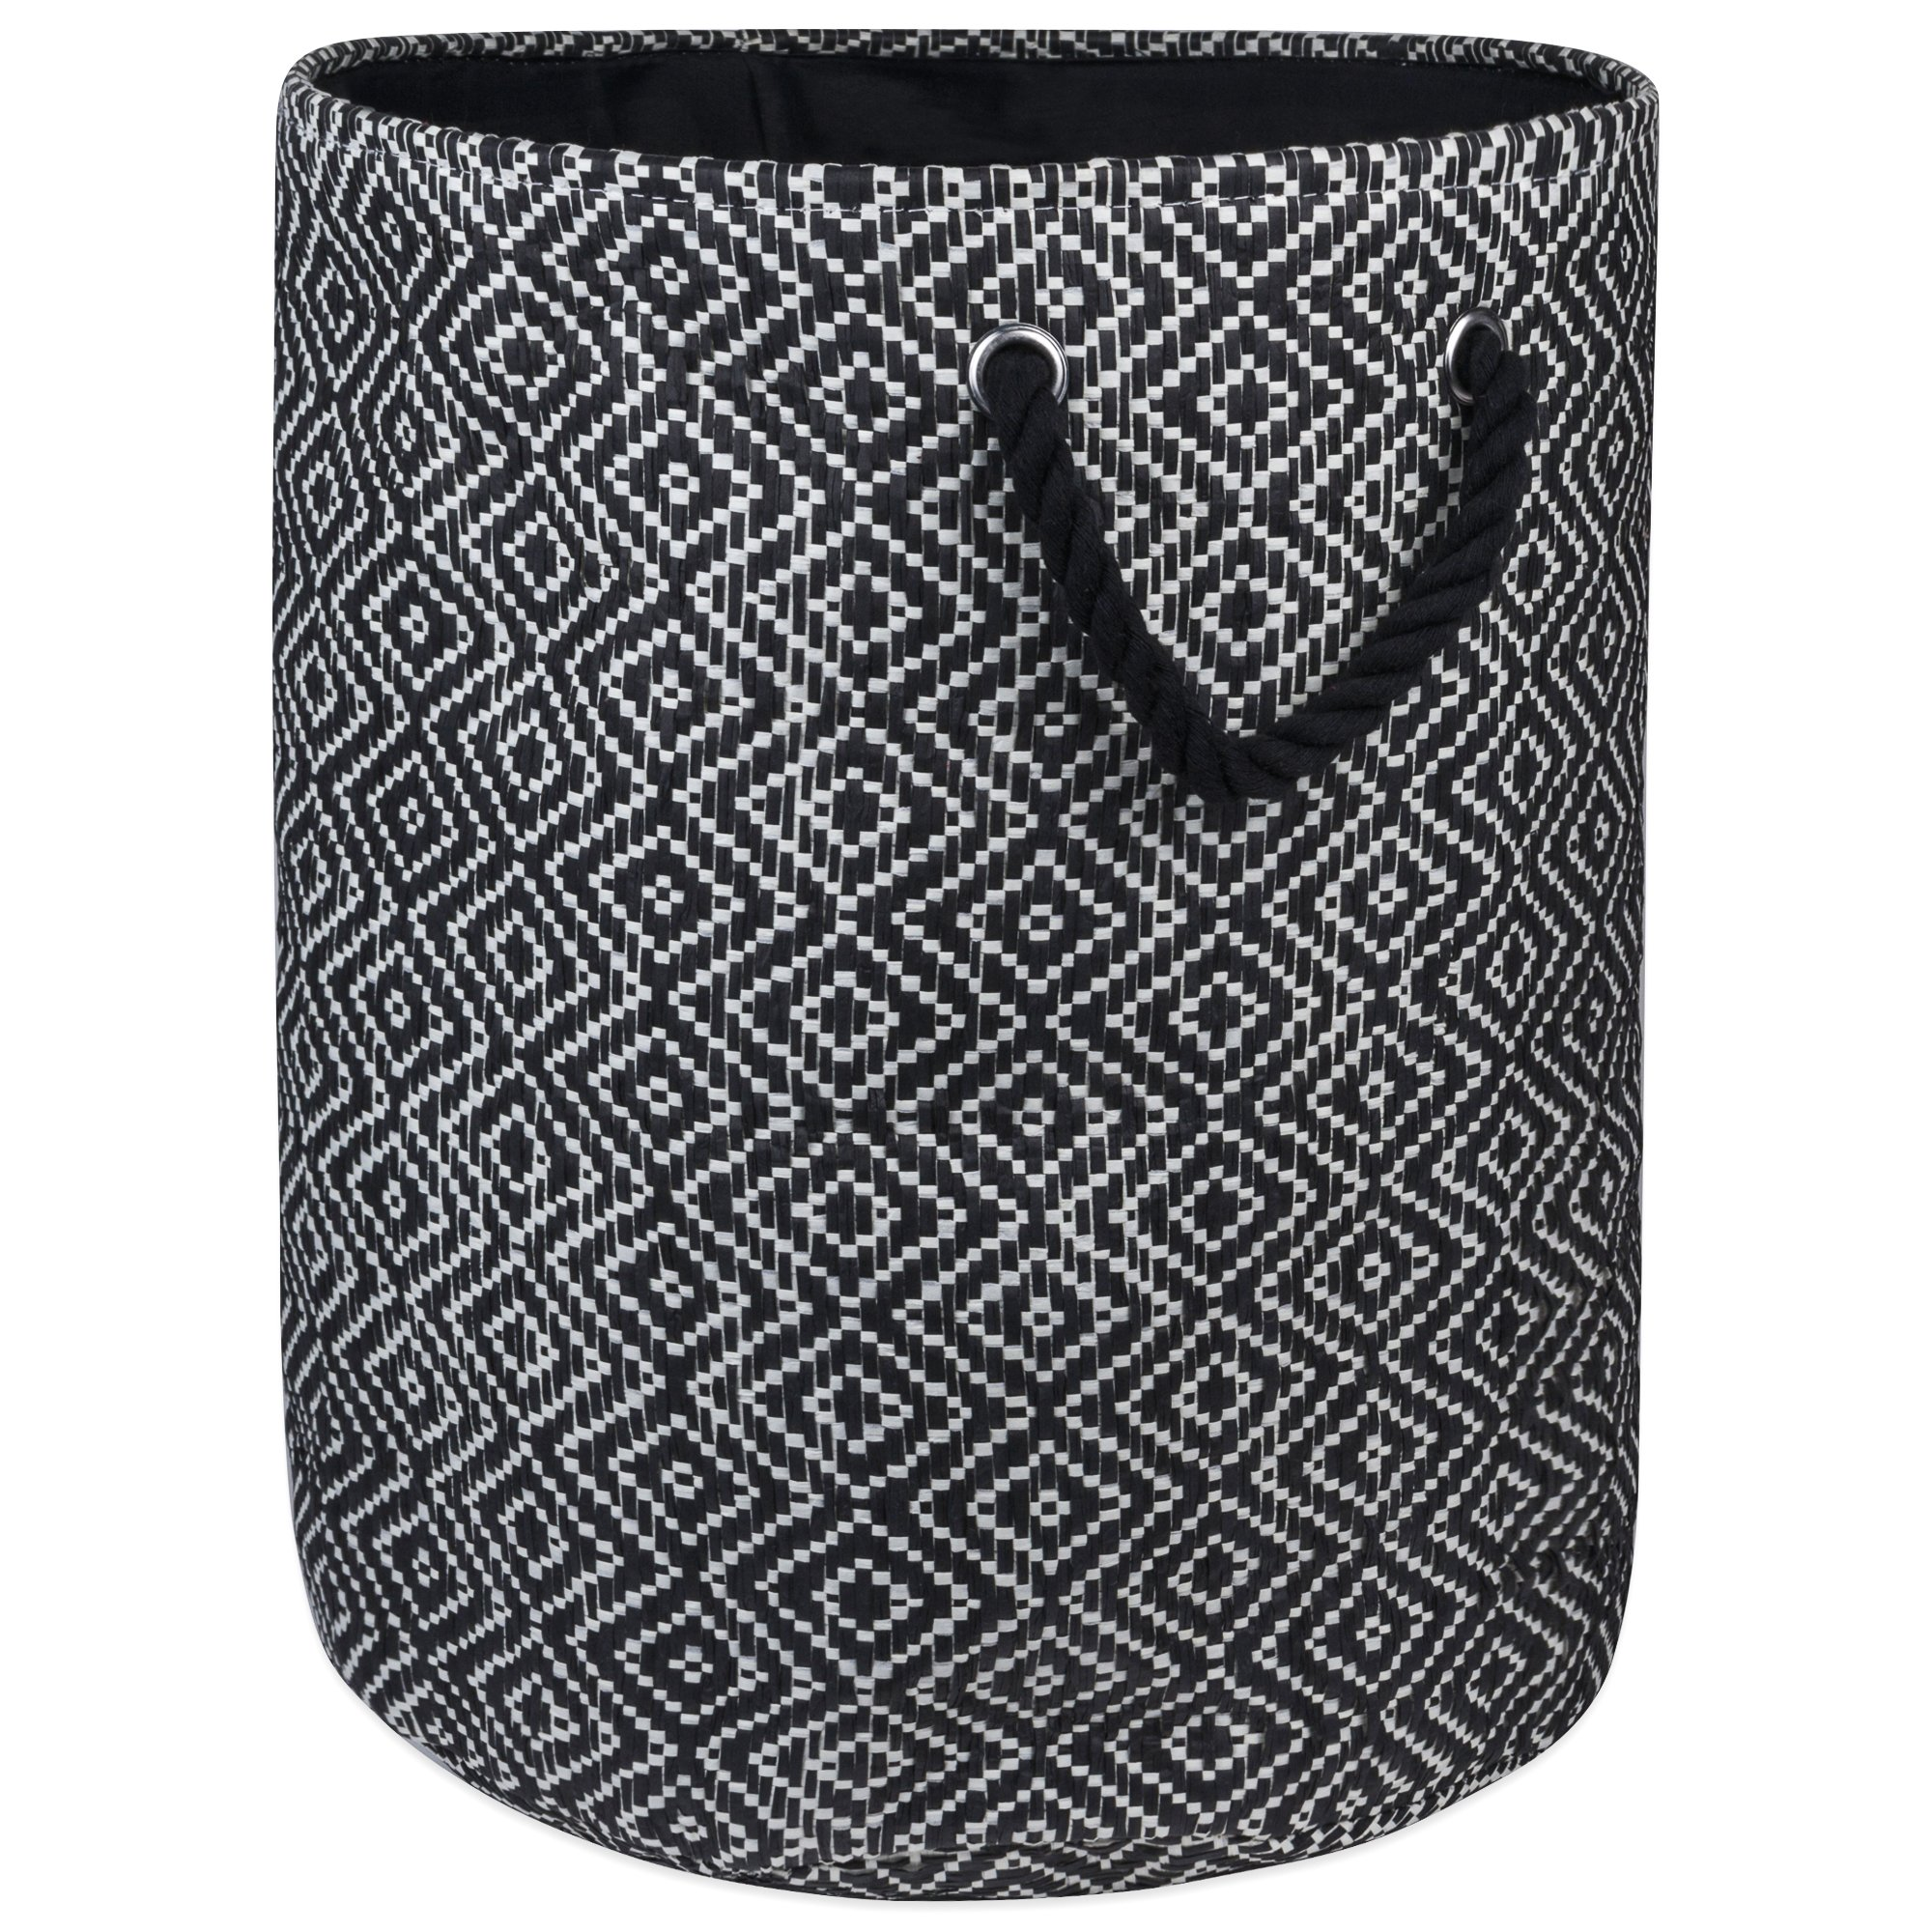 """DII Woven Paper Basket or Bin, Collapsible & Convenient Home Organization Solution for Bedroom, Bathroom, Dorm or Laundry(Medium Round - 14x17""""), Black & White Diamond Basketweave"""